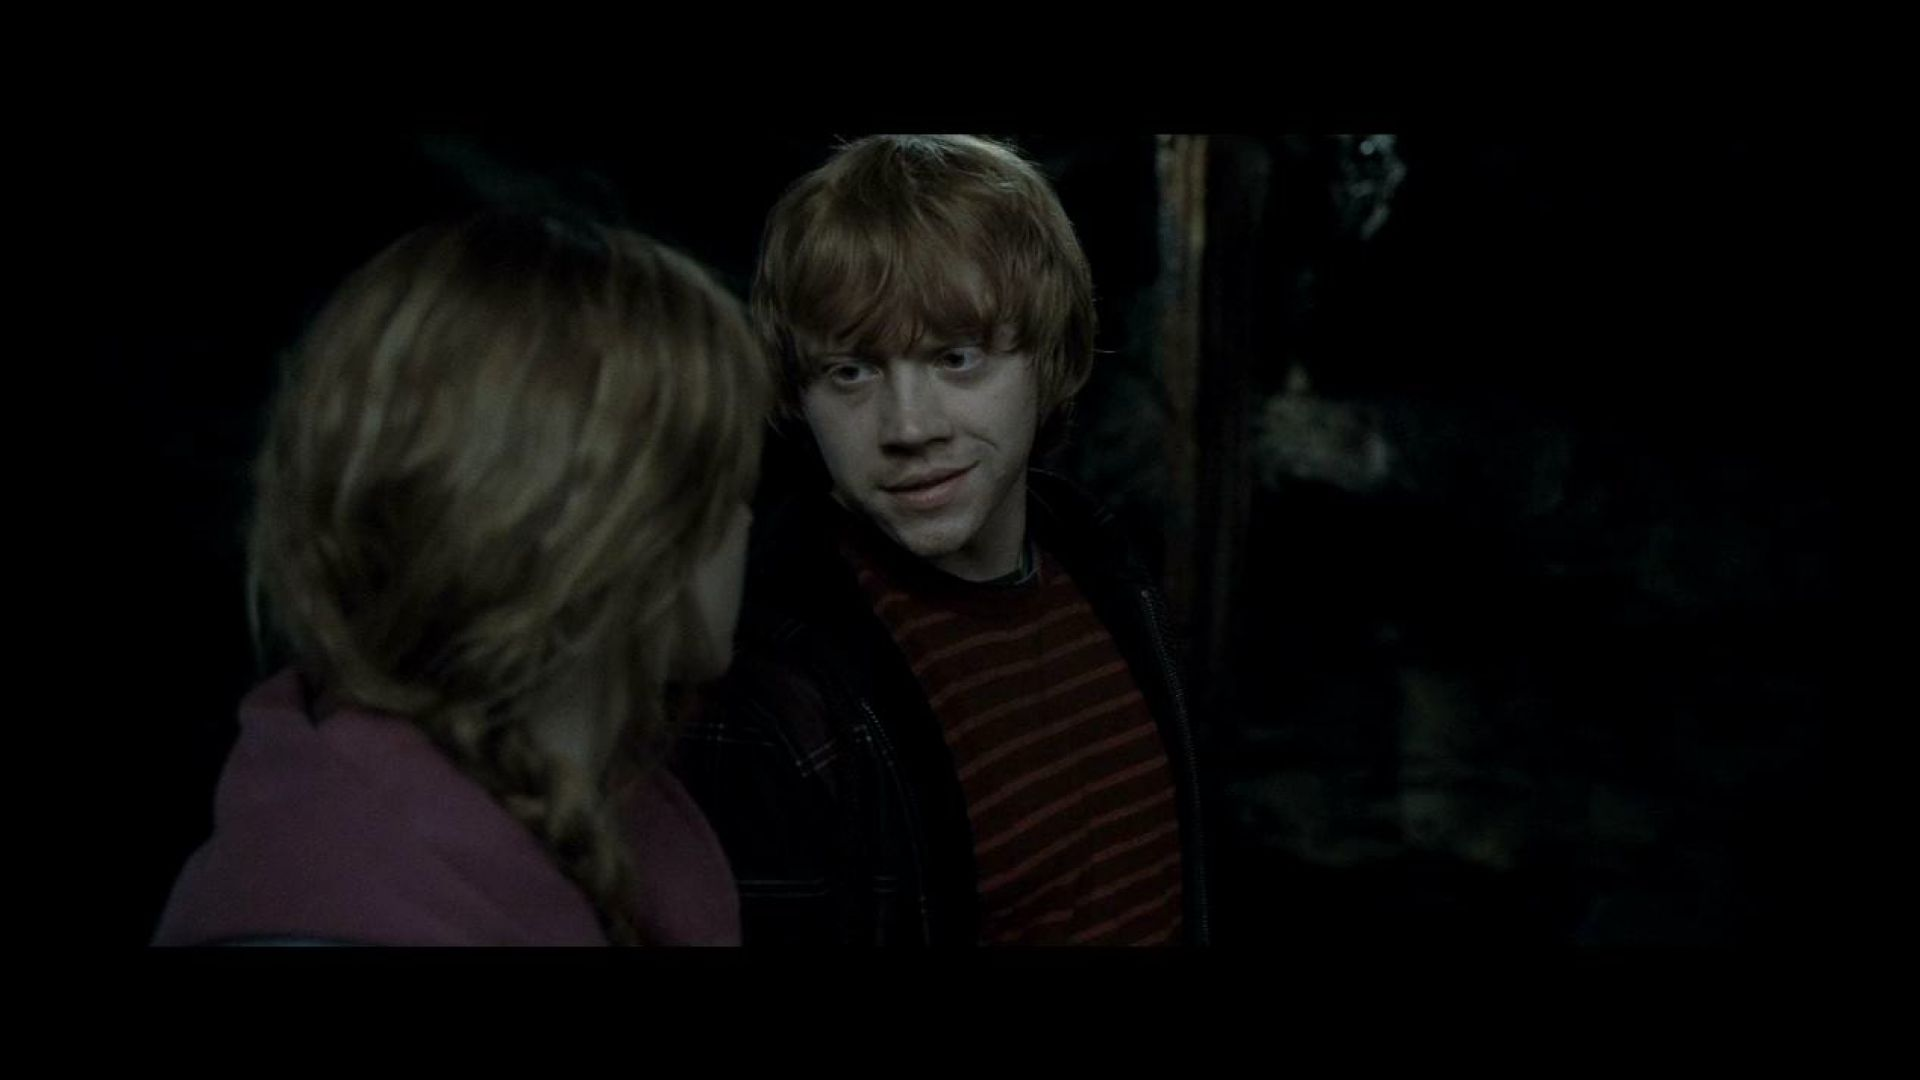 Hermione and Ron go into the Chamber of Secrets to destroy Helga Hufflepuff's cup